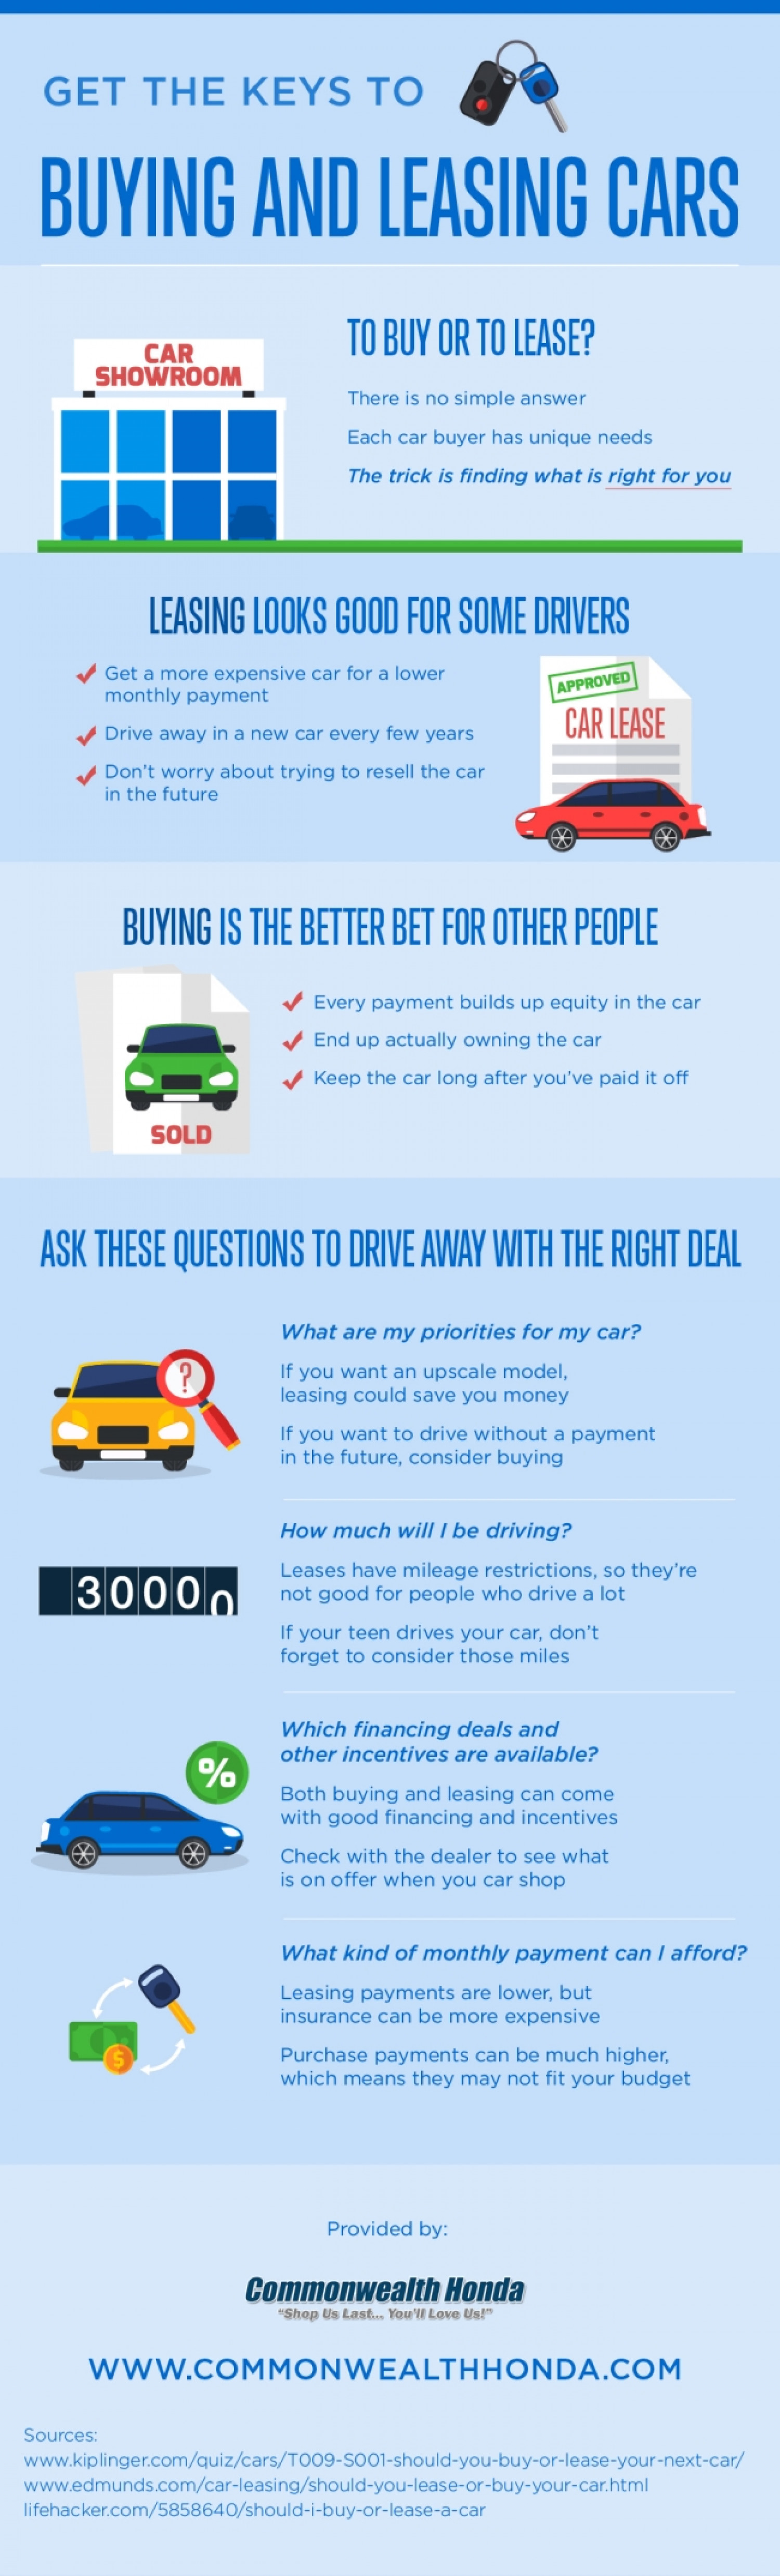 Get the Keys to Buying and Leasing Cars Infographic